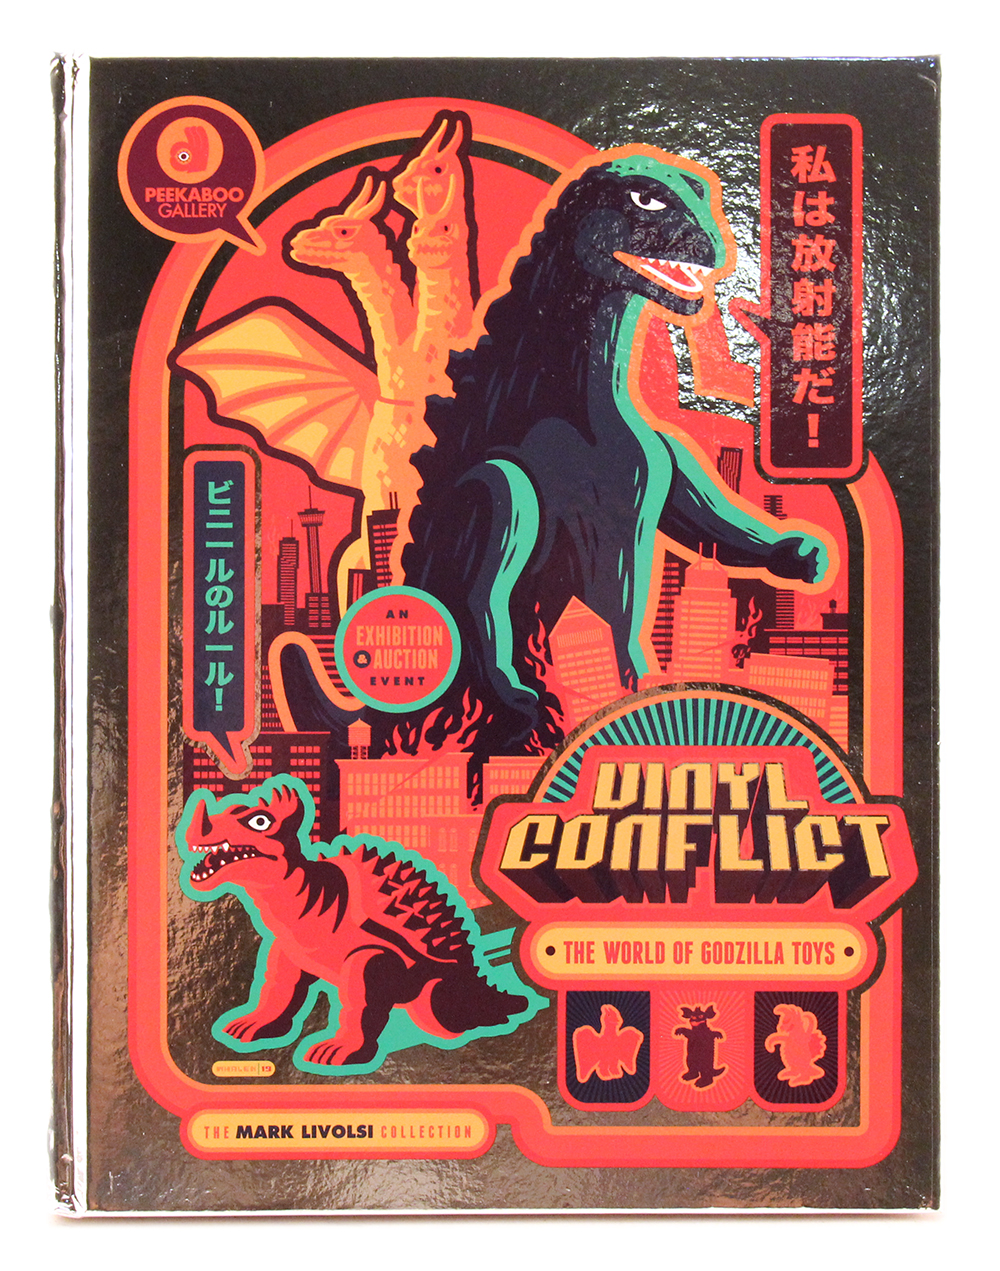 Vinyl Conflict: The World of Godzilla Toys